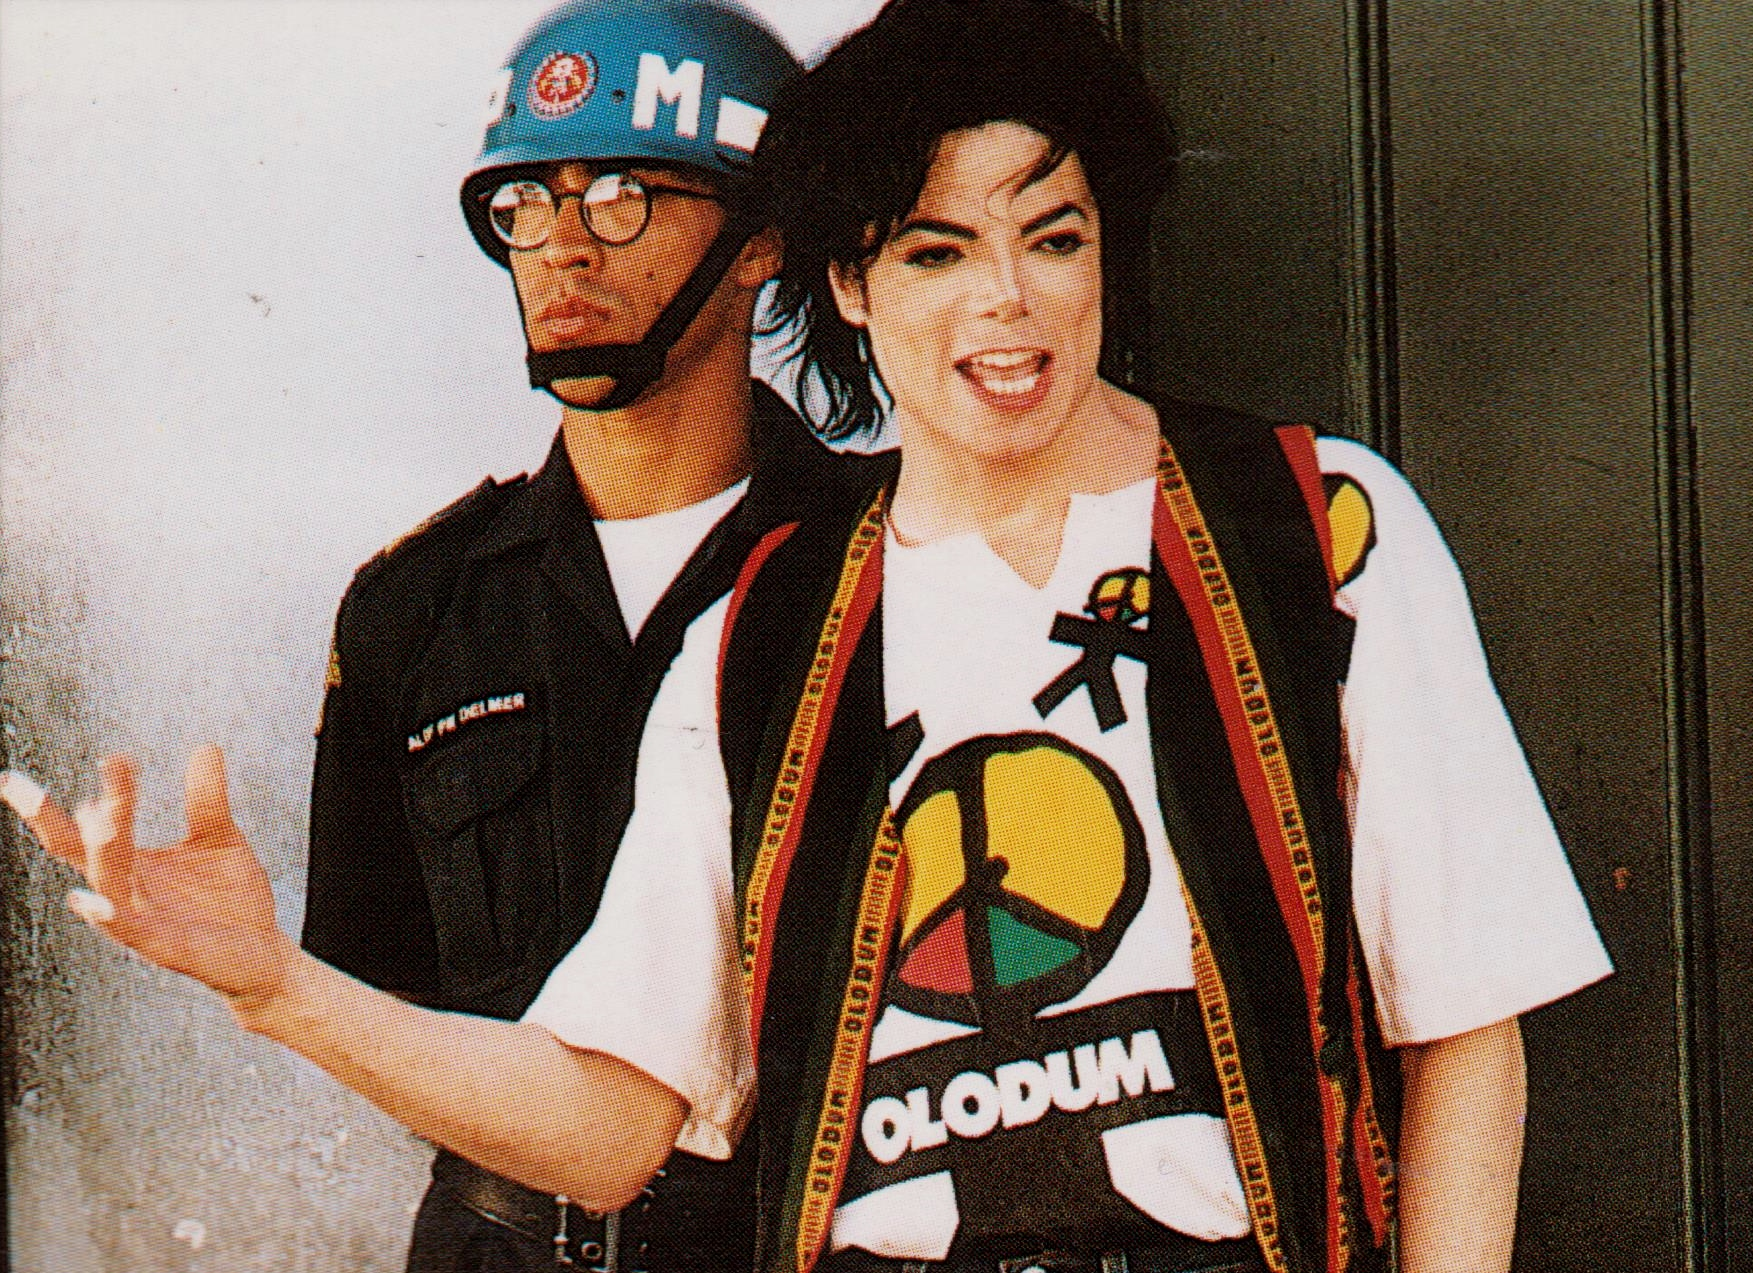 Michael Jackson - HQ Scan - They Don't Care About Us Short Film